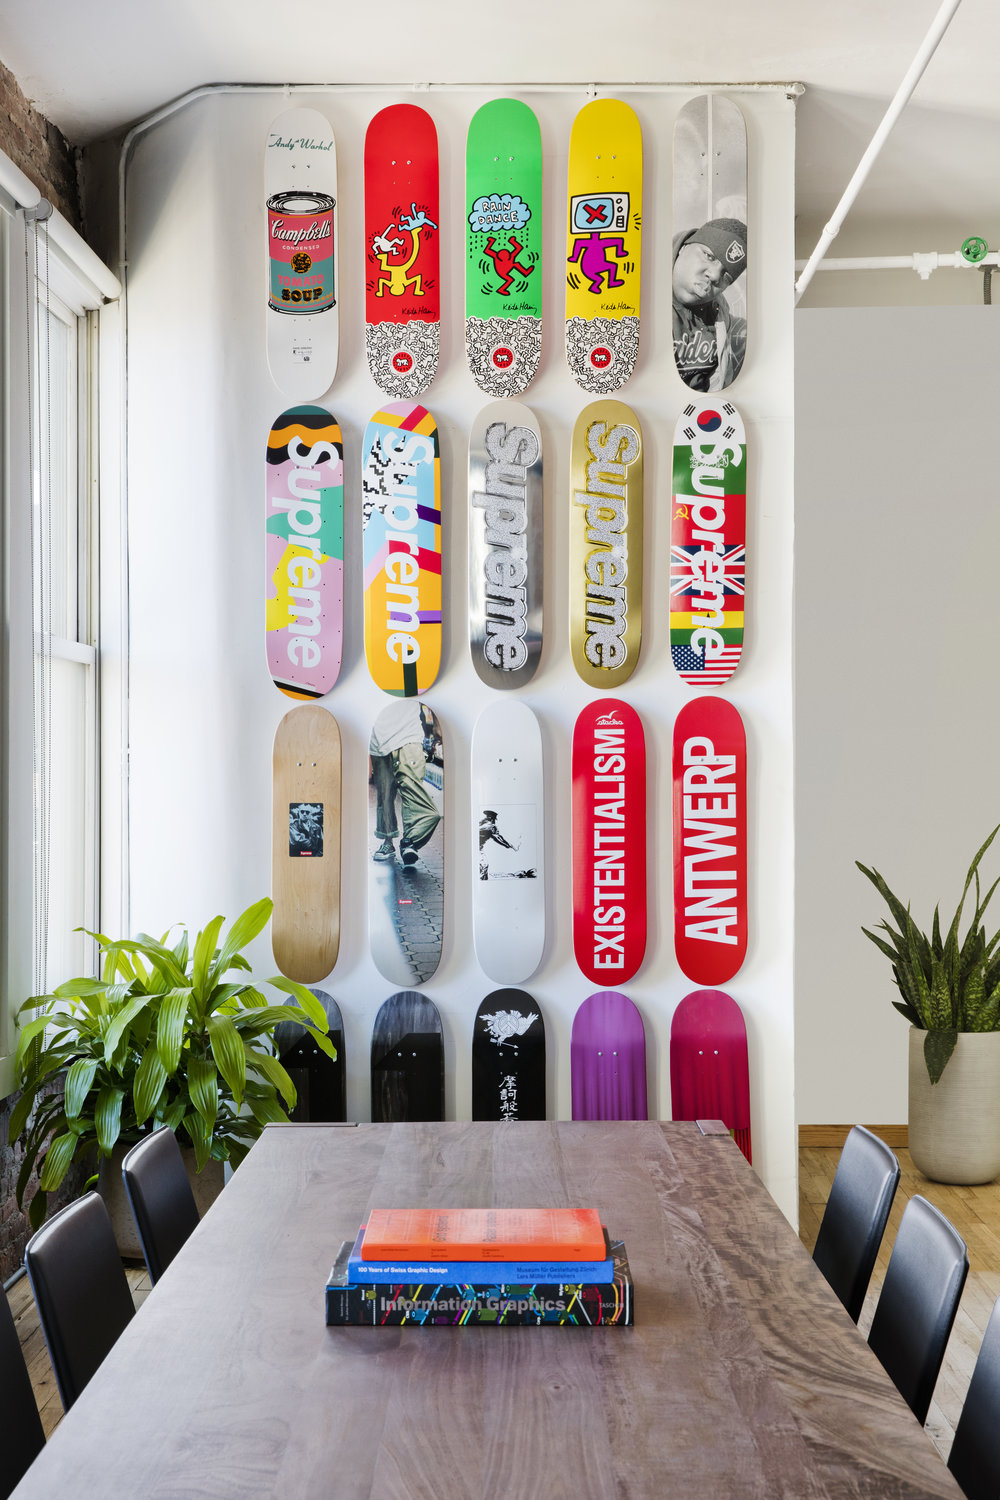 One of the many jaw-dropping exhibits in the Grailed office. Supreme decks on deck!  Source: Gigantic Forehead